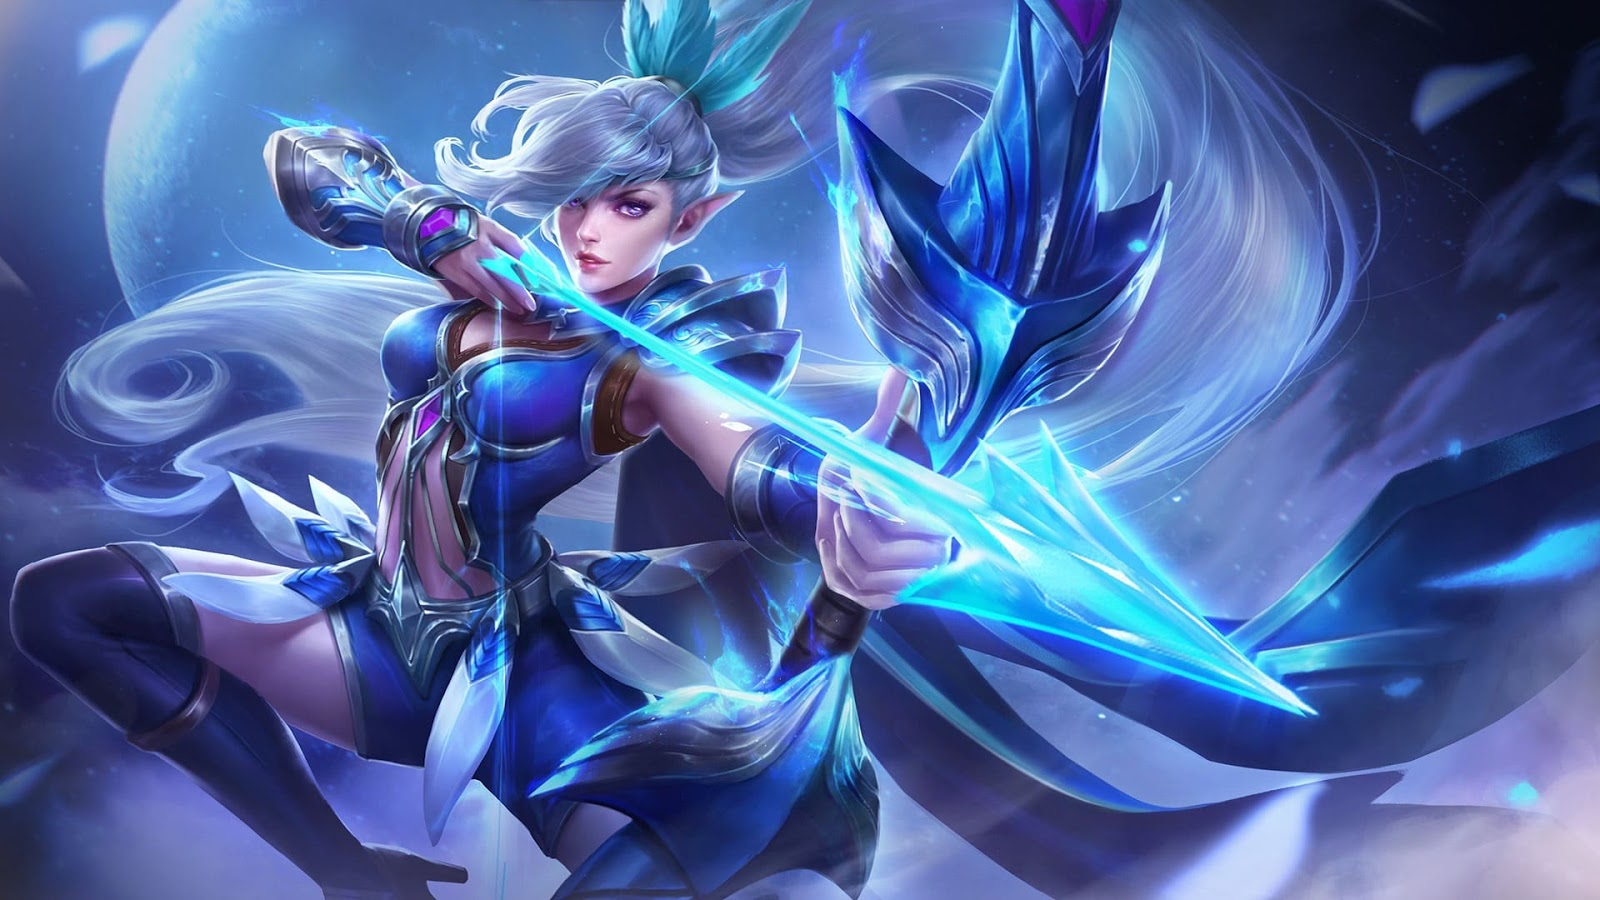 Wallpaper Miya Moonlight Archer Skin Mobile Legends HD for PC